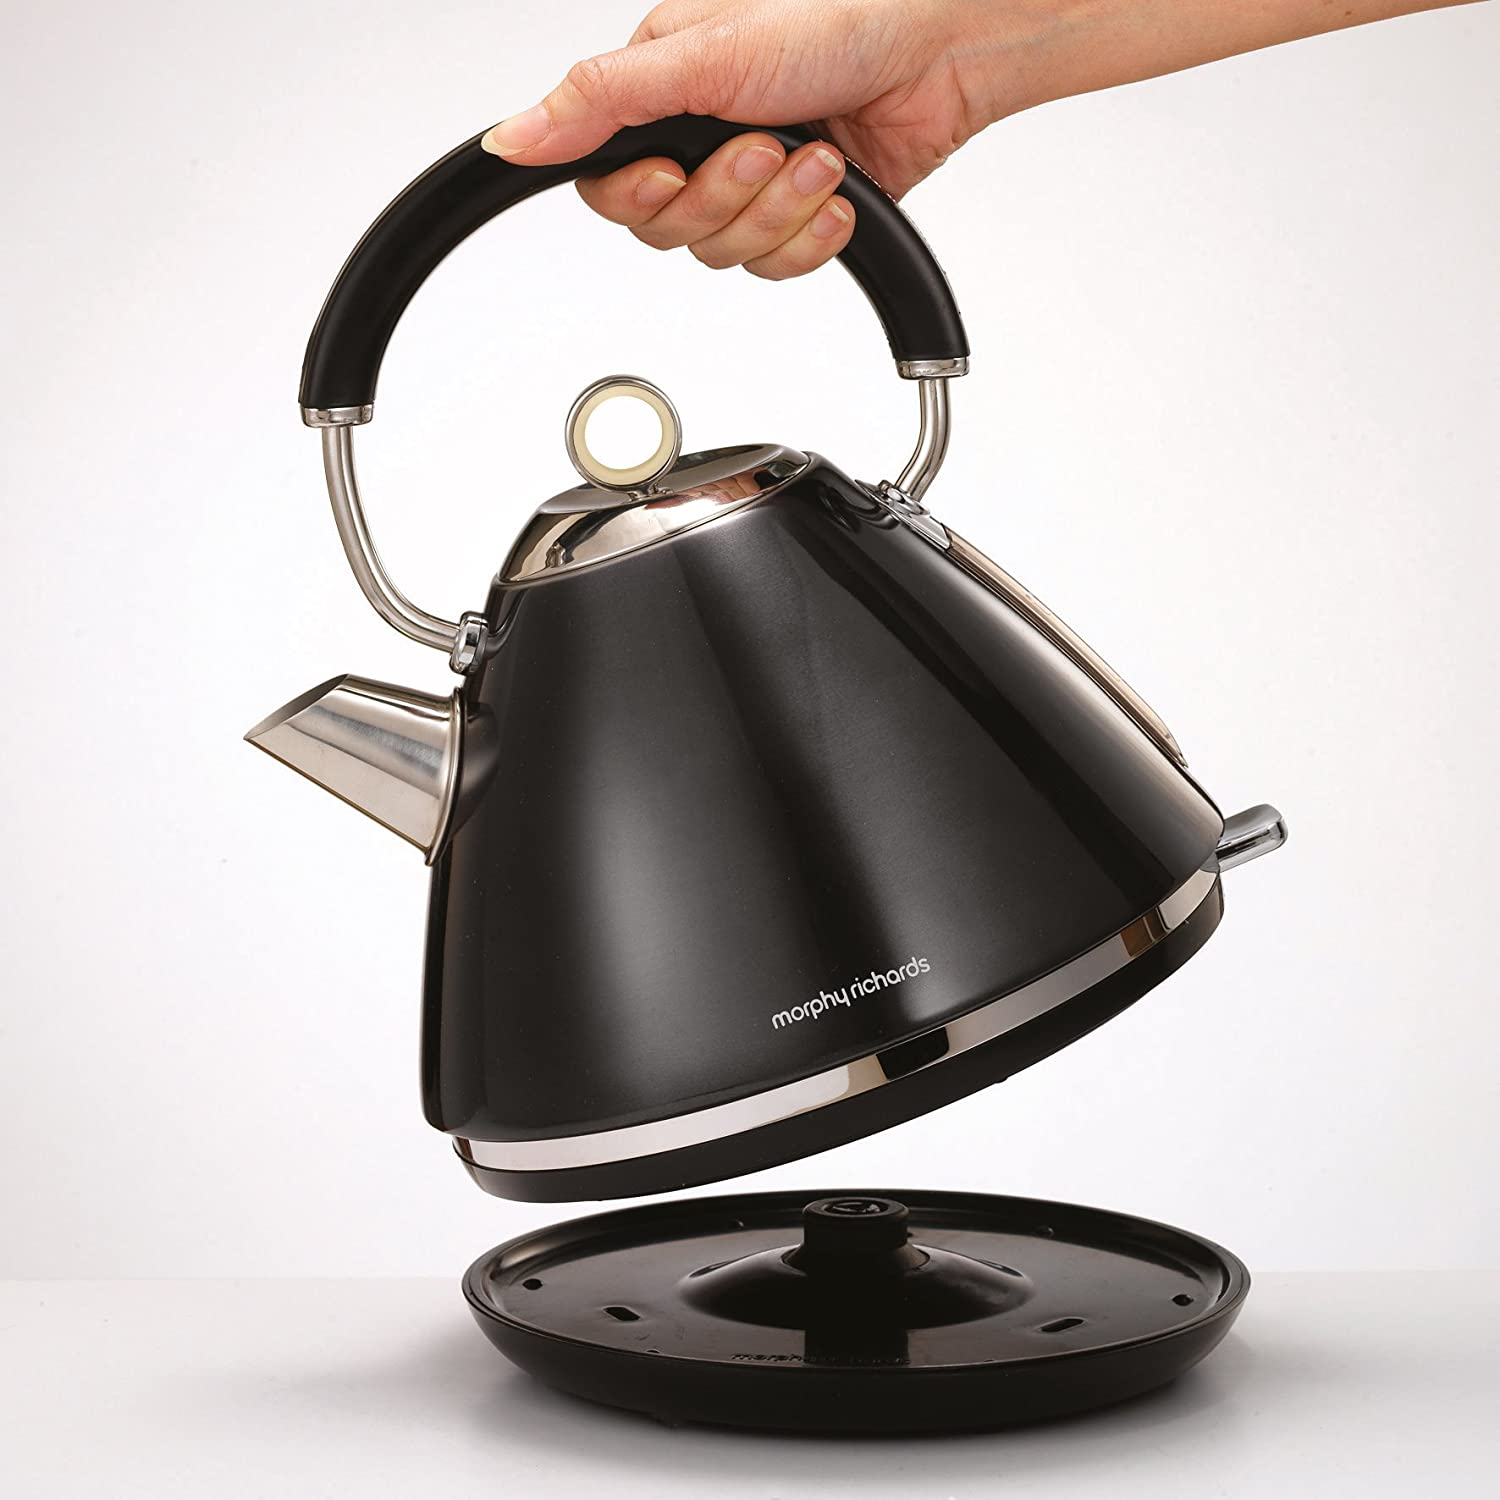 Azure by Morphy Richards Morphy Richards 102100 Accents Special Edition Kettle